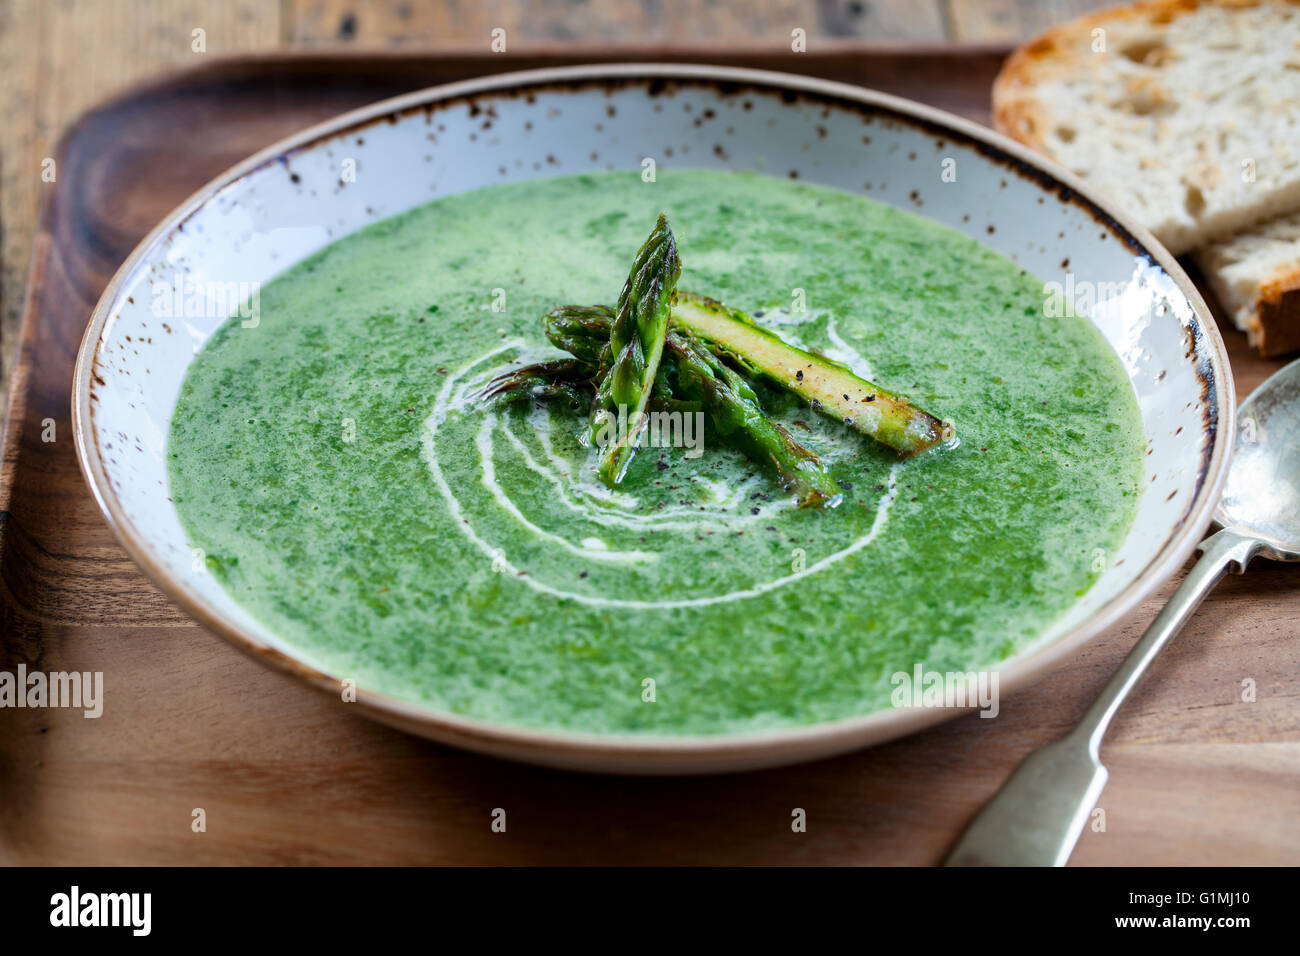 Asparagus and spinach soup - Stock Image